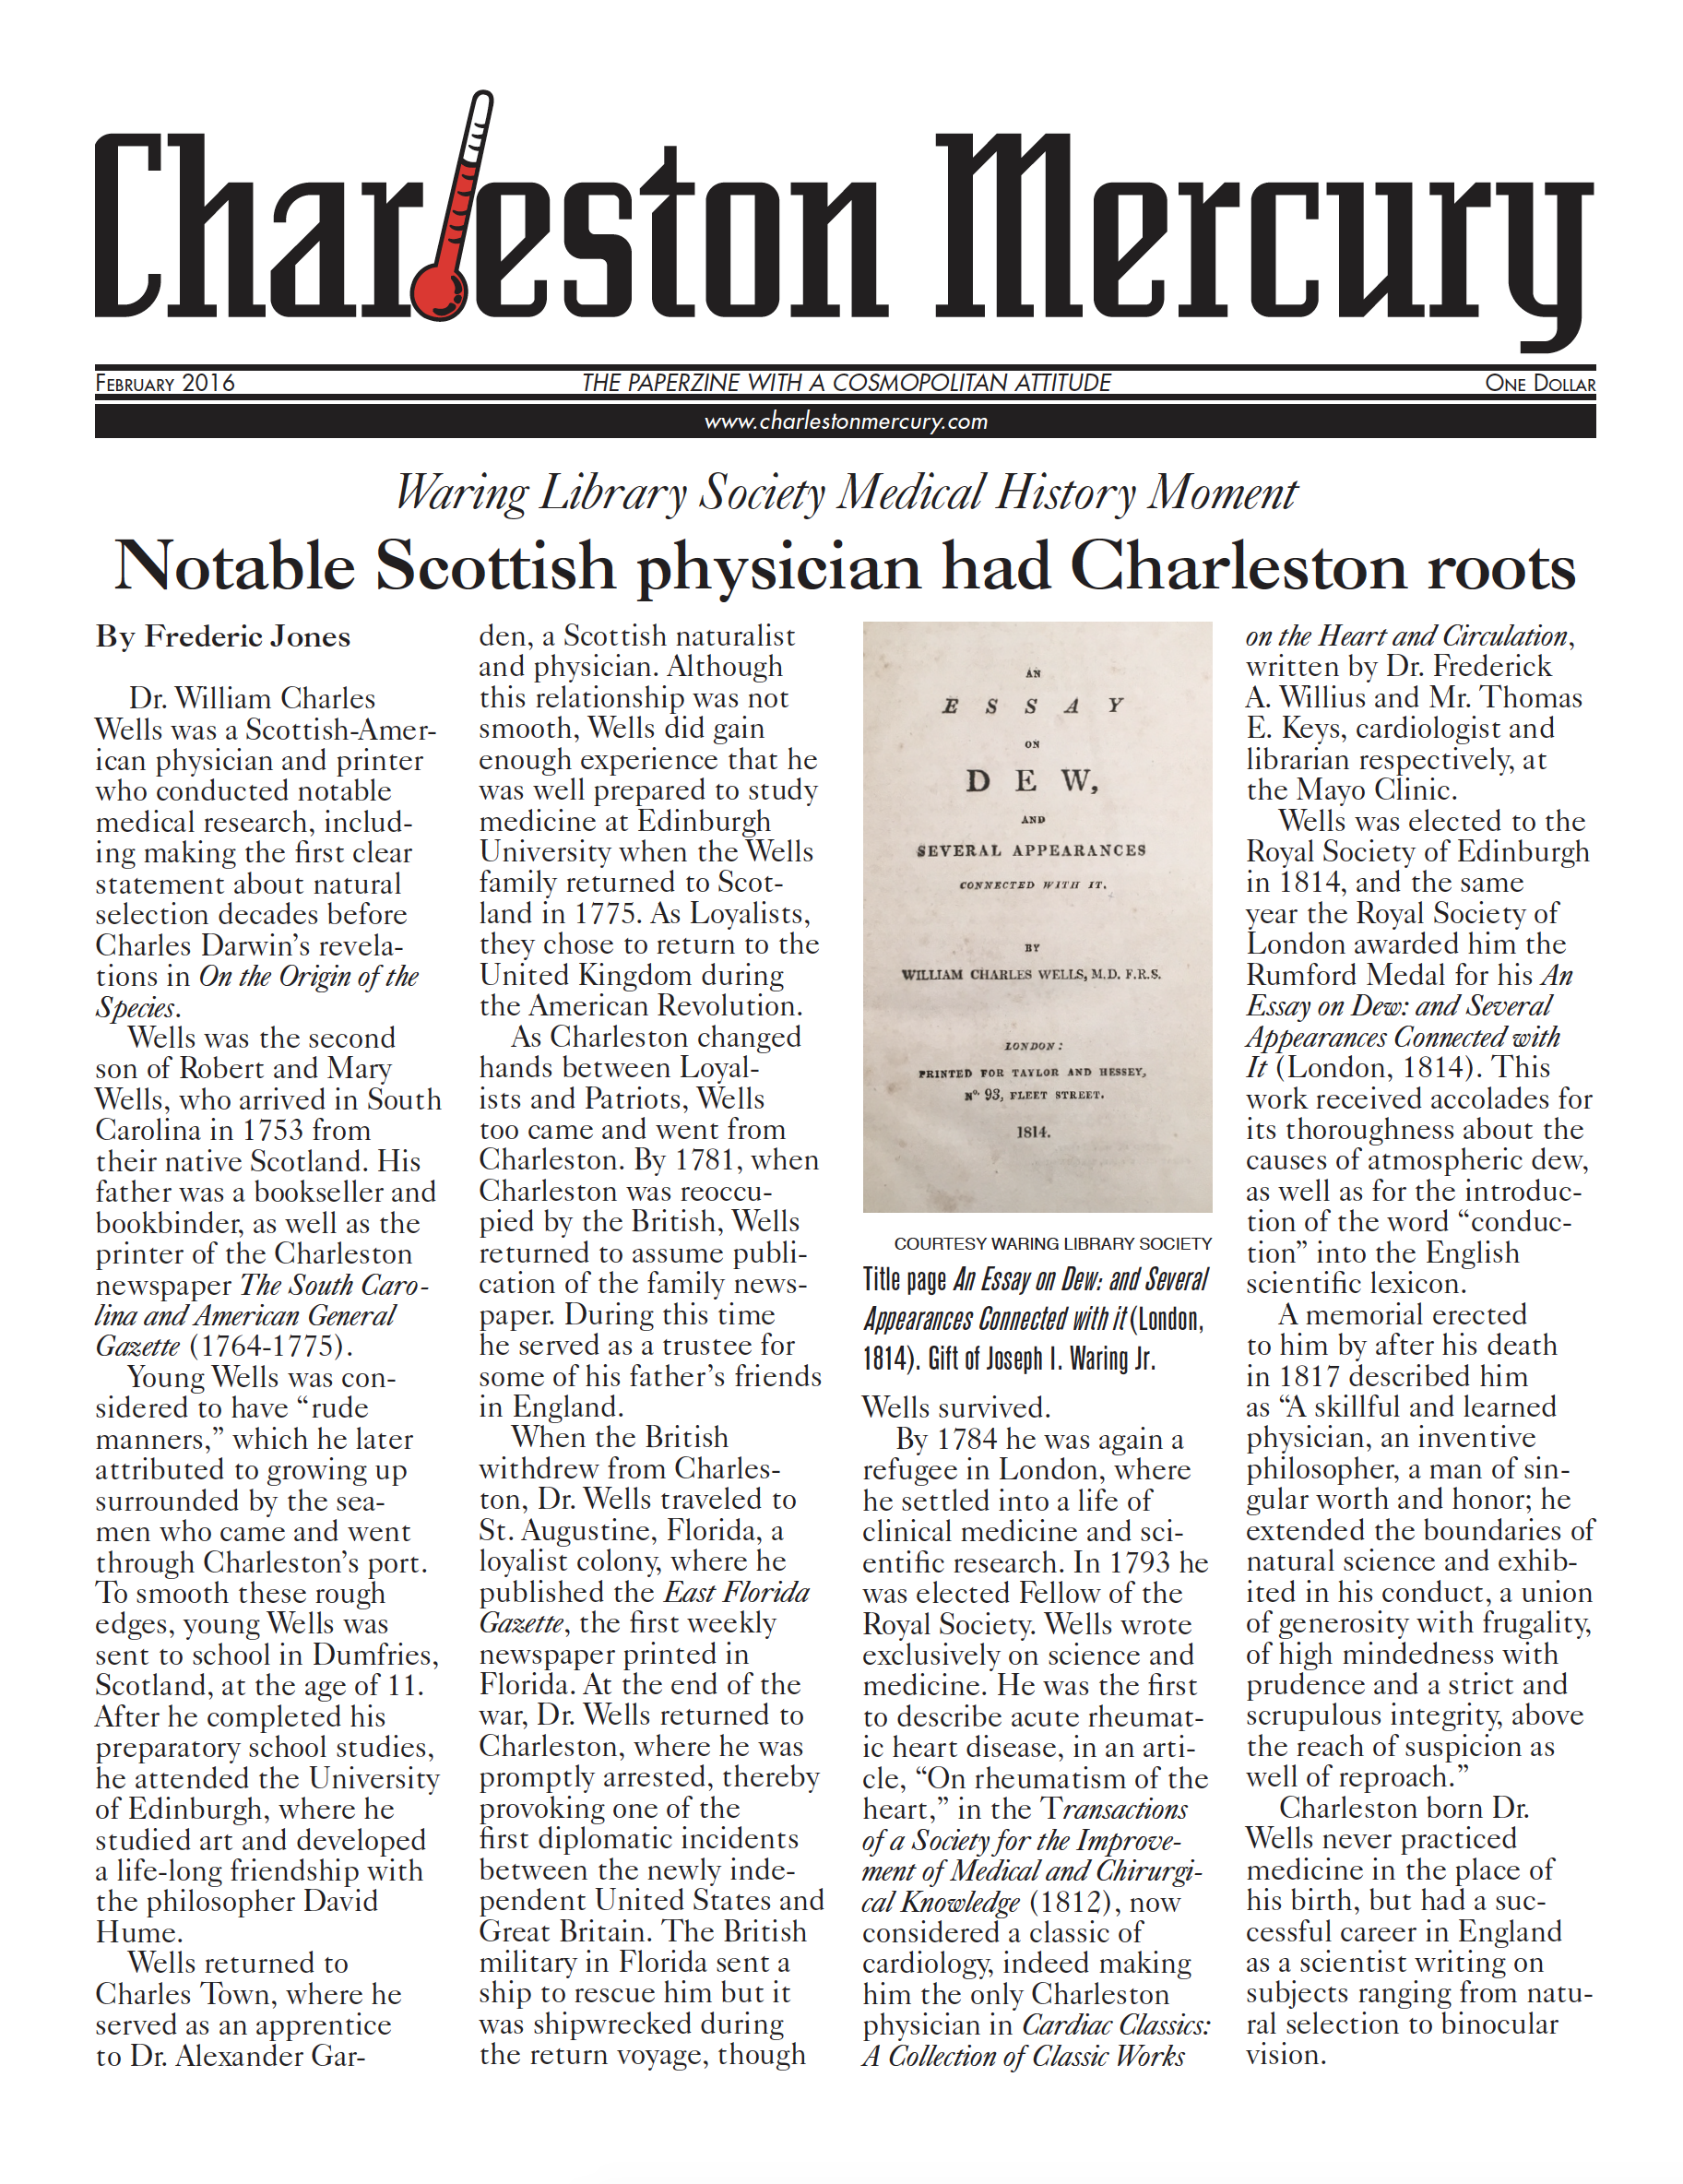 Charleston Mercury, February 2016